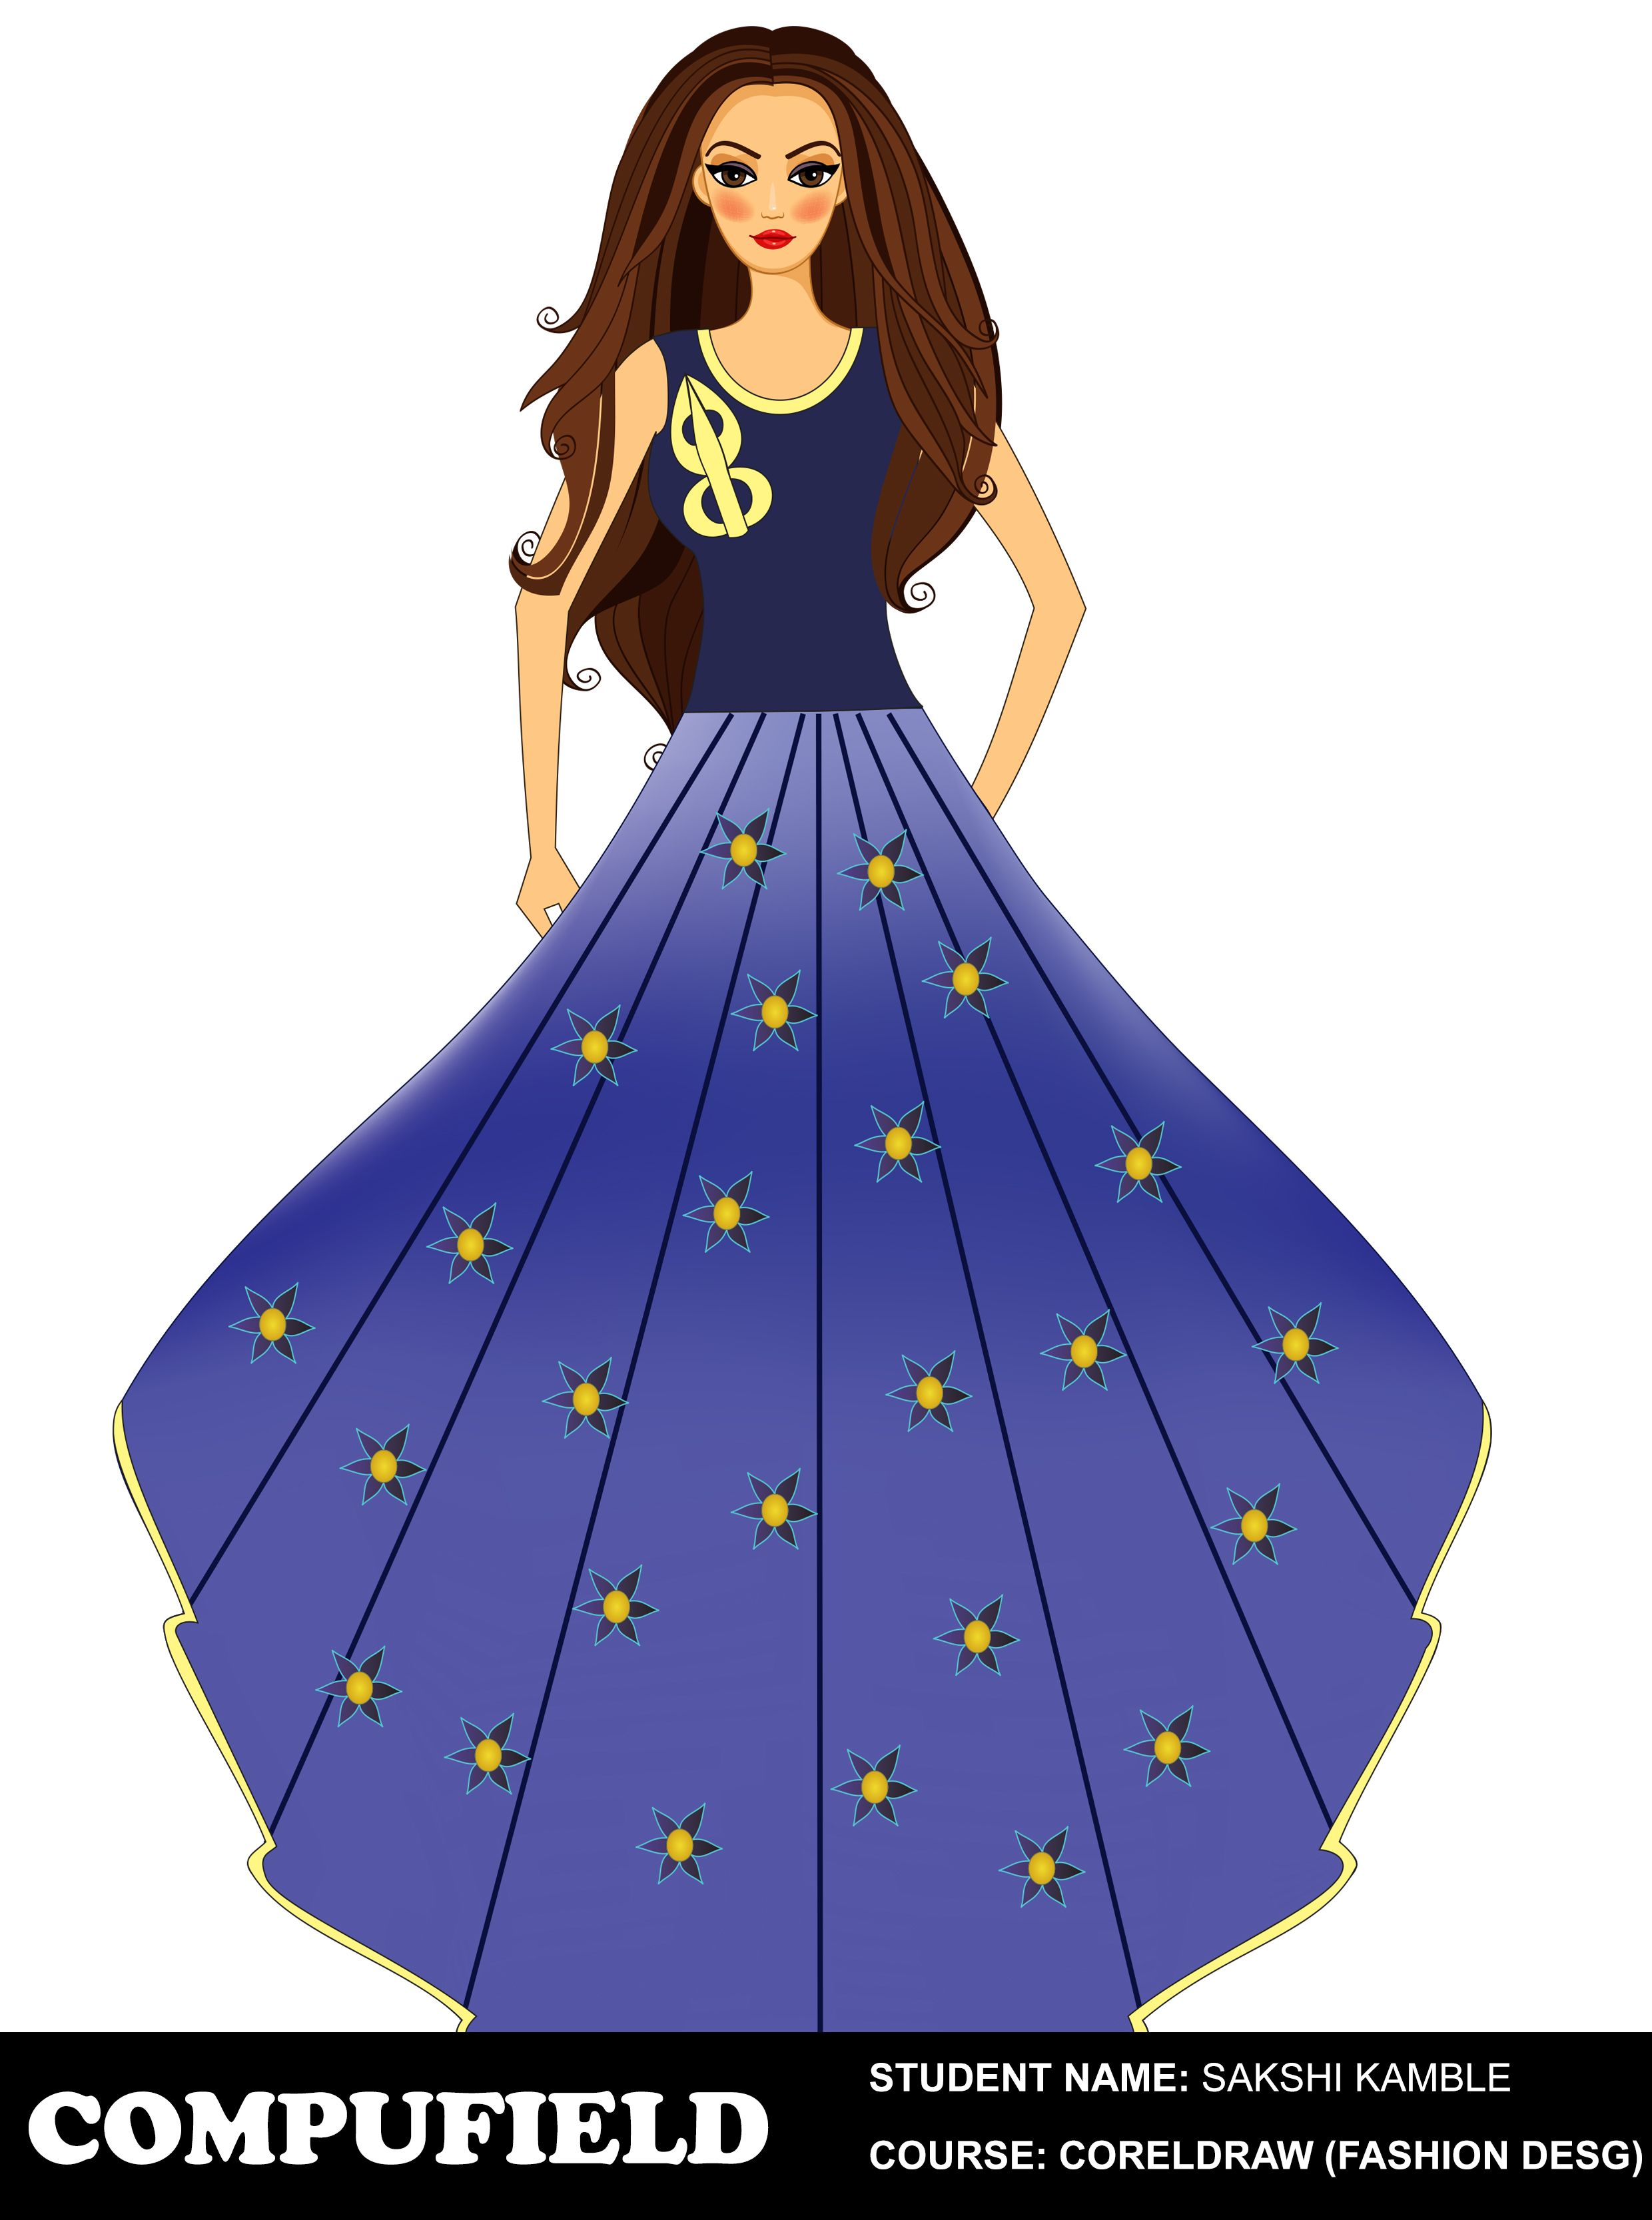 Fashiondesigning Project Done By Our Student Ms Shakshi Kamble At Compufield Computer Institute Coreldraw Fas Fashion Design Clothes Design Market Design